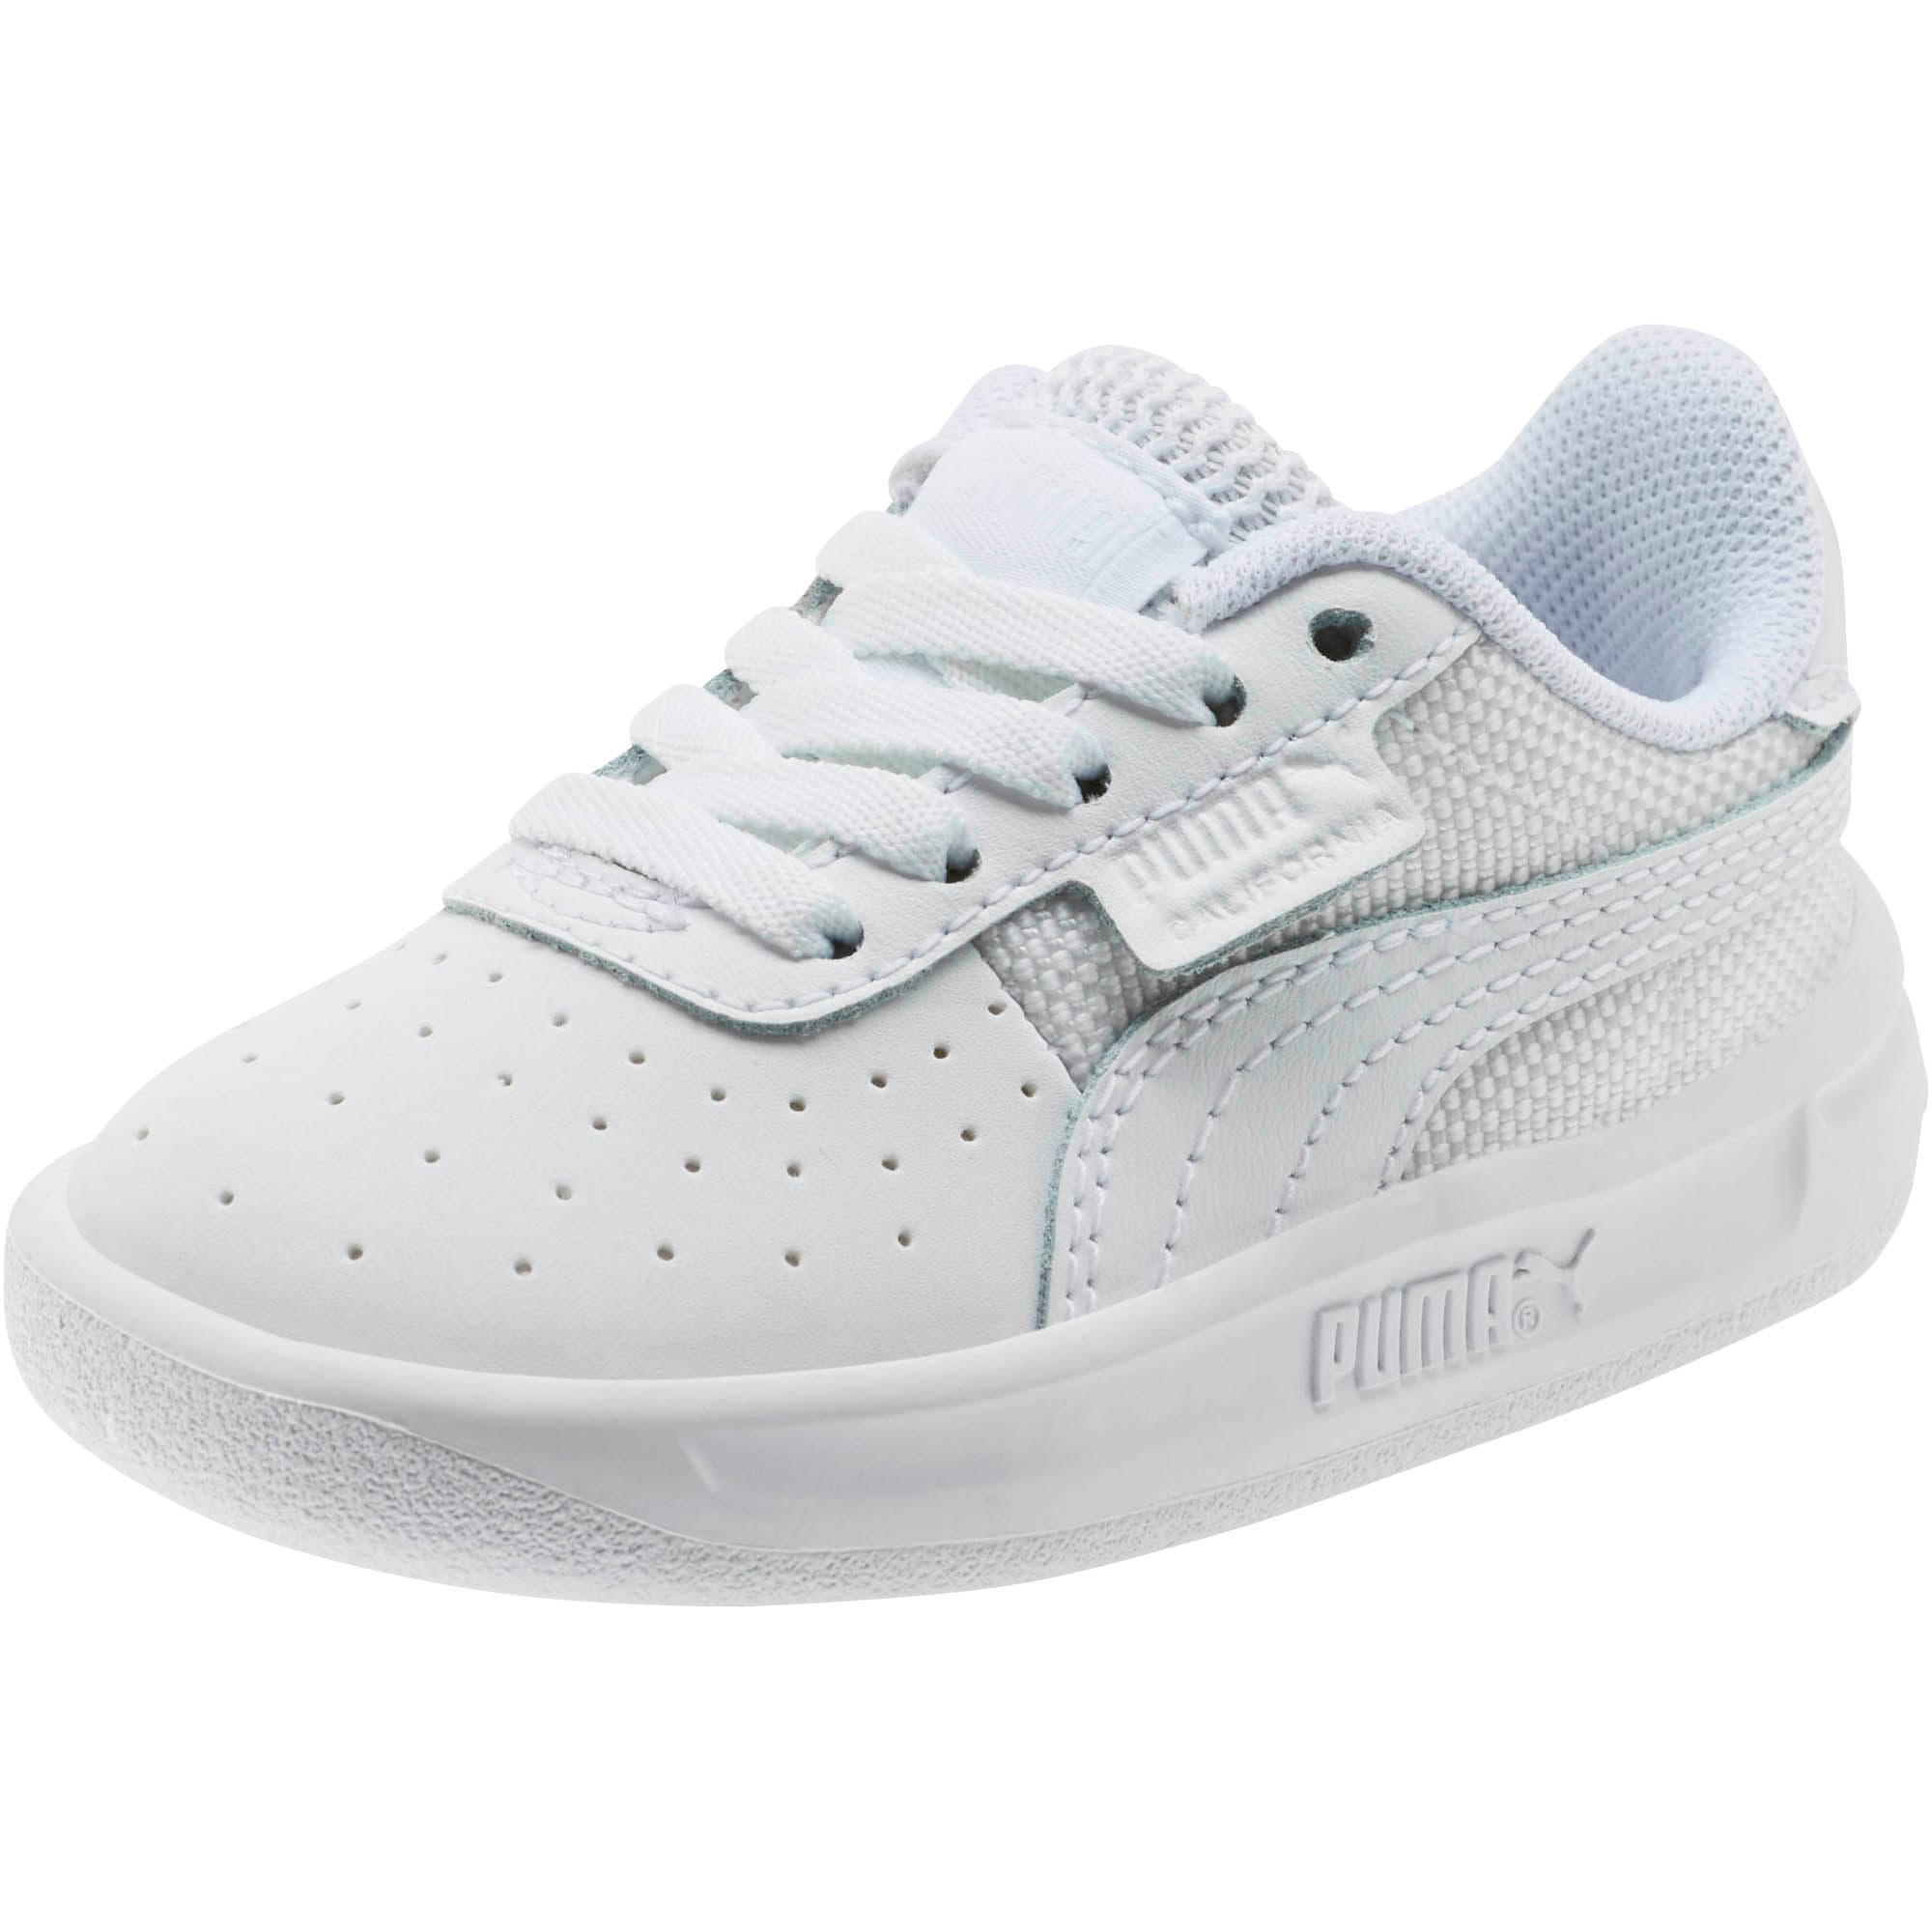 Thumbnail 1 of California Toddler Shoes, P White-P White-Puma White, medium